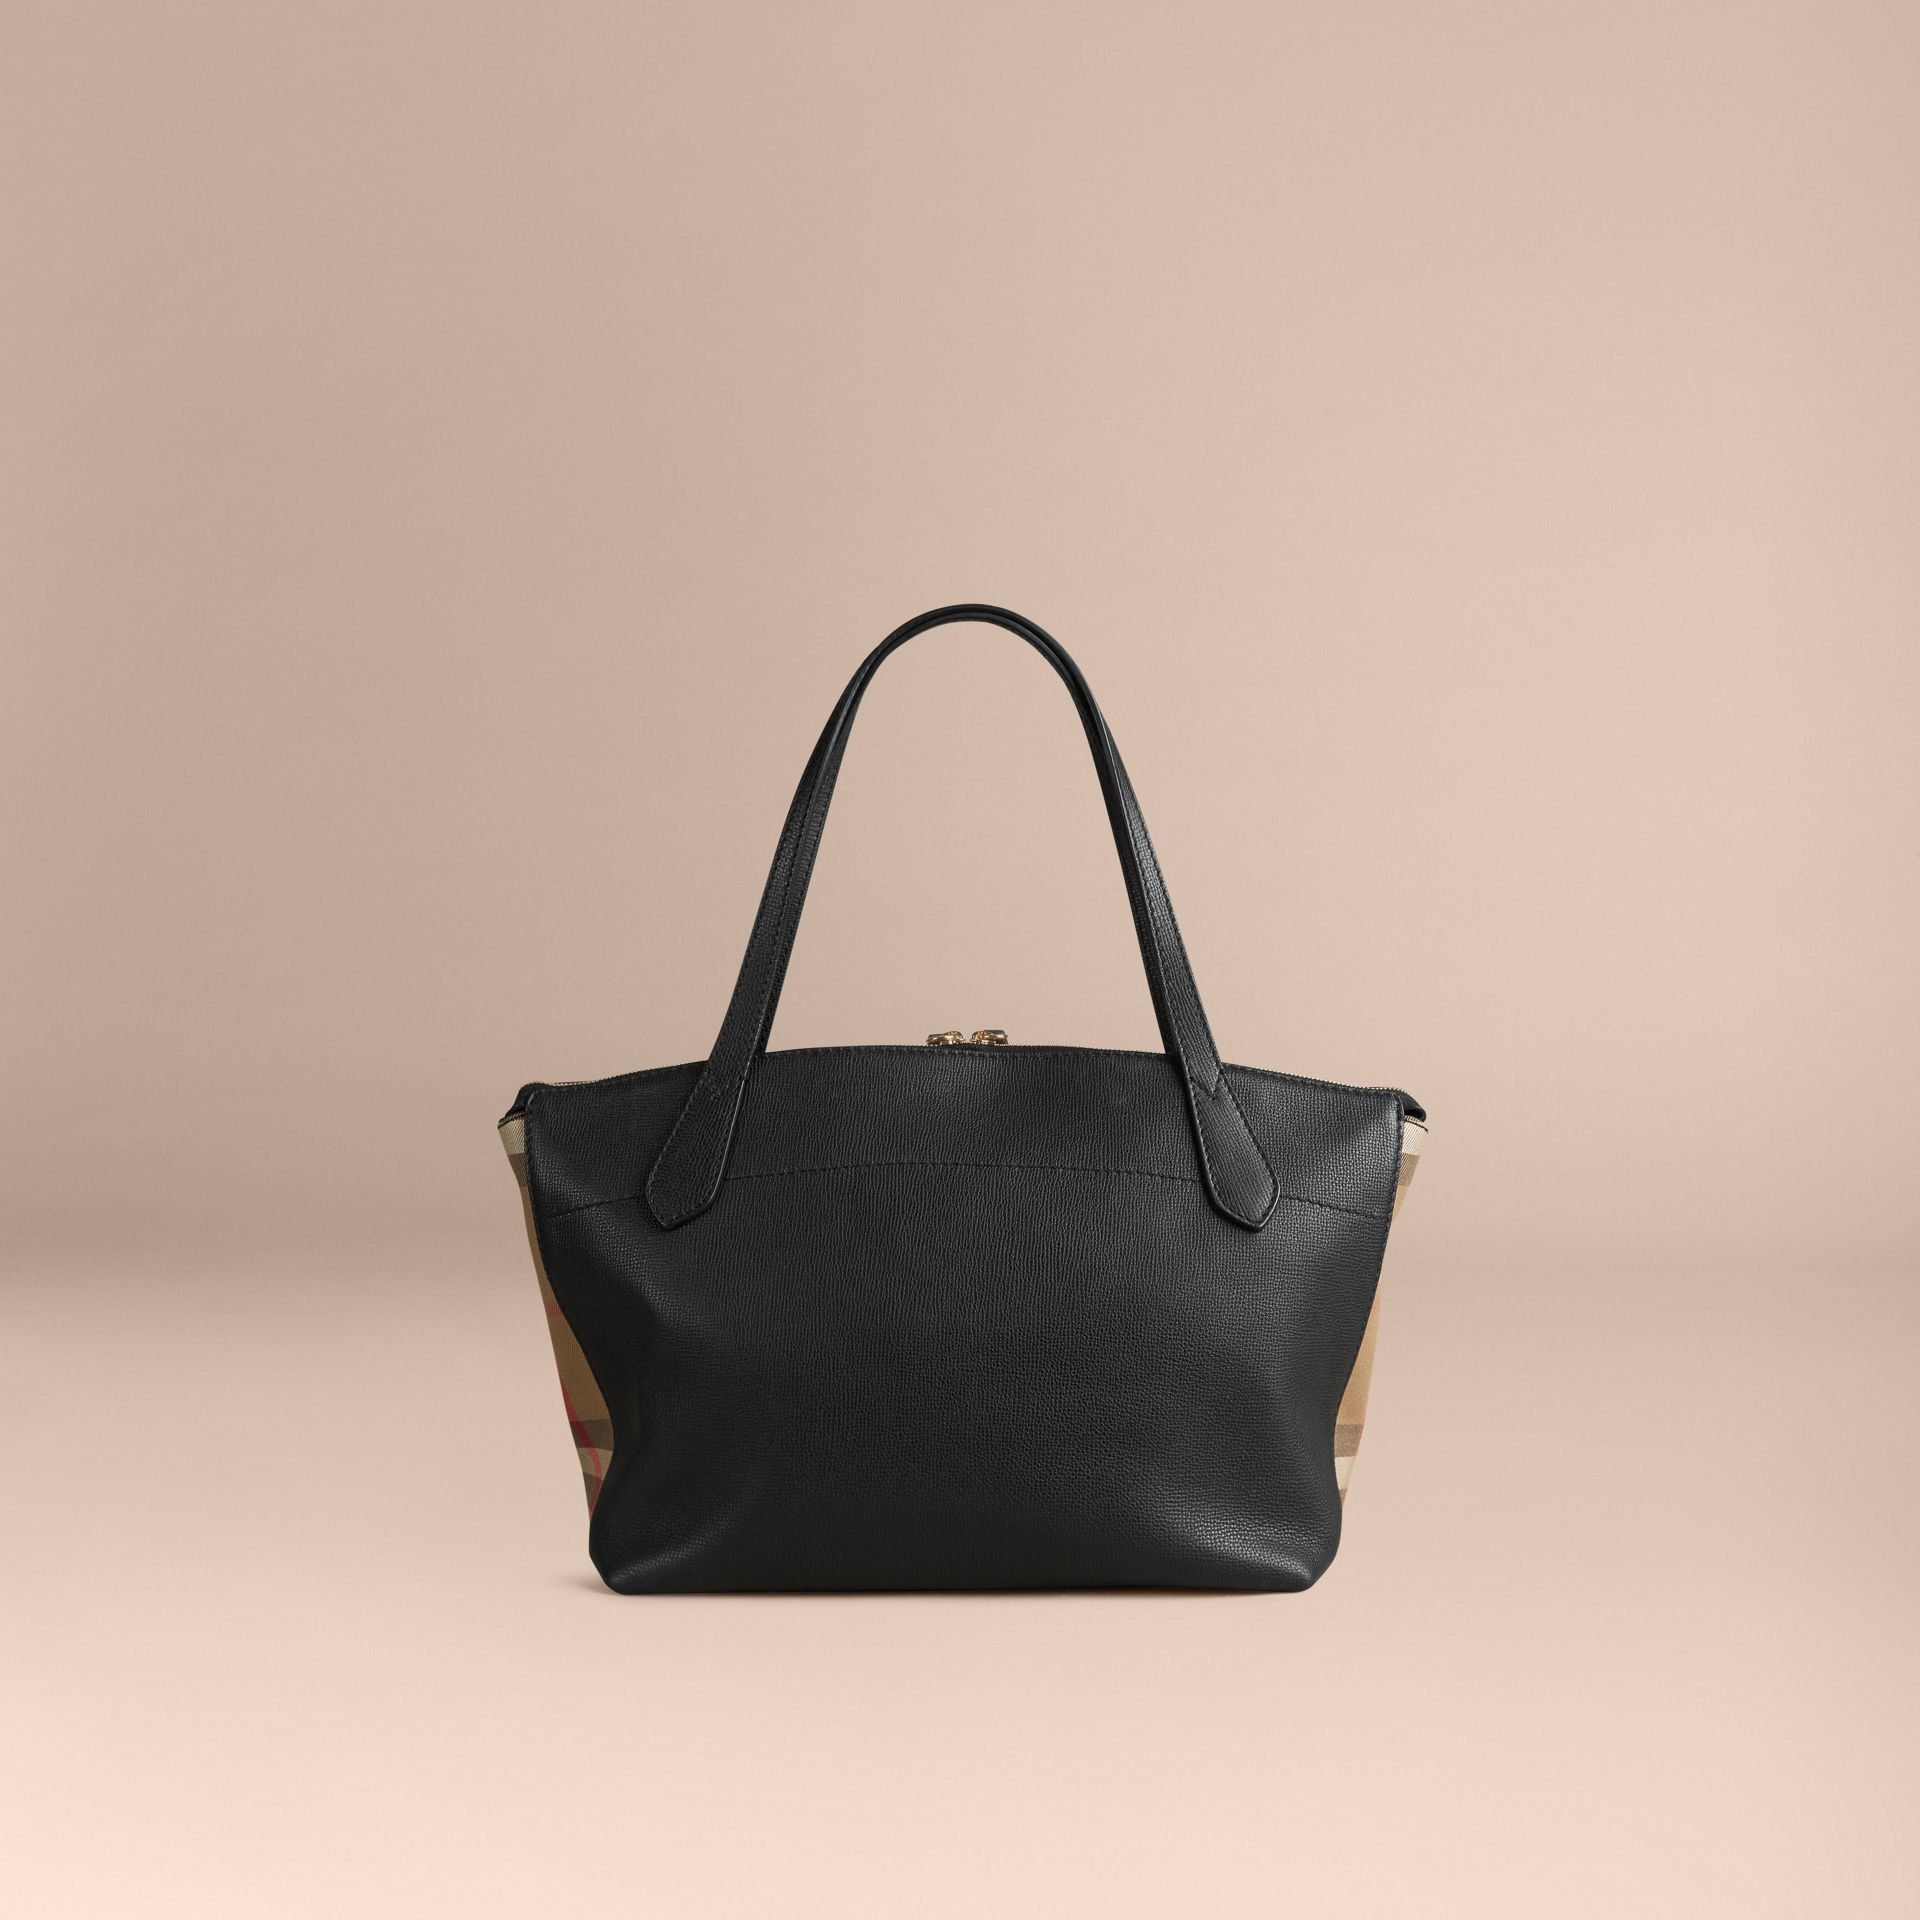 Black Medium Leather and House Check Tote Bag Black - gallery image 4